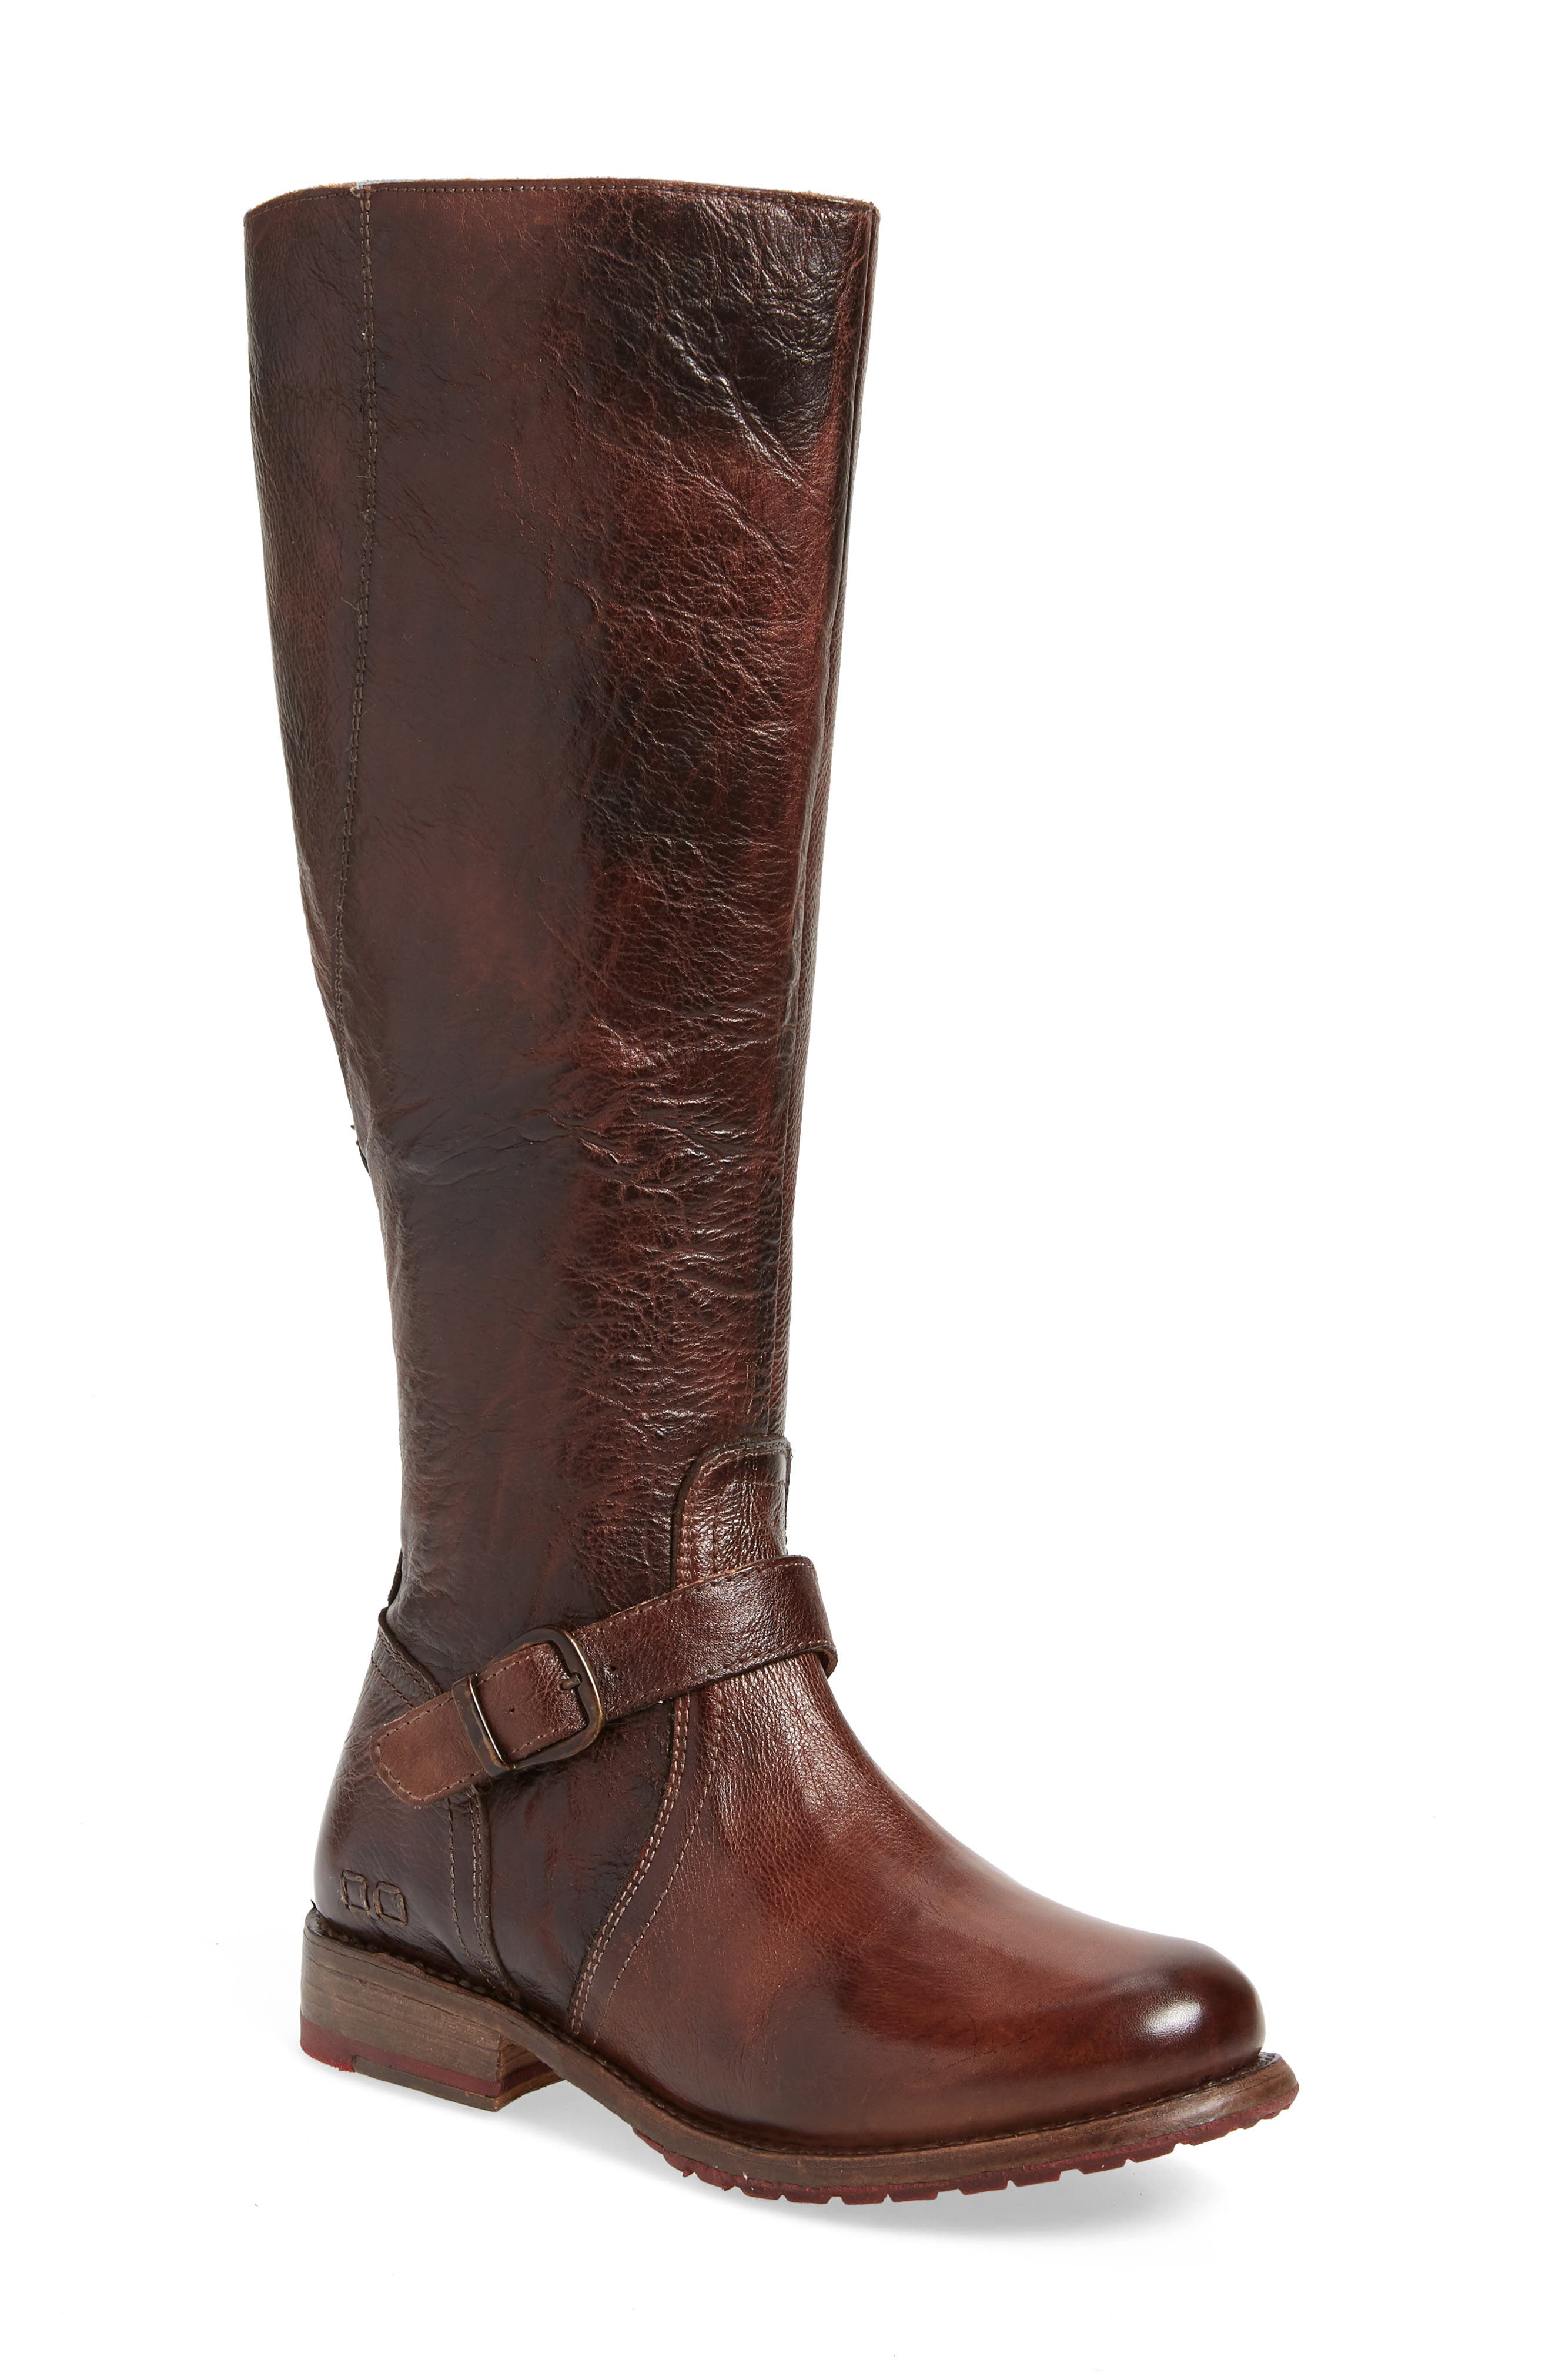 high fashion outlet boutique official photos brown riding boots | Nordstrom